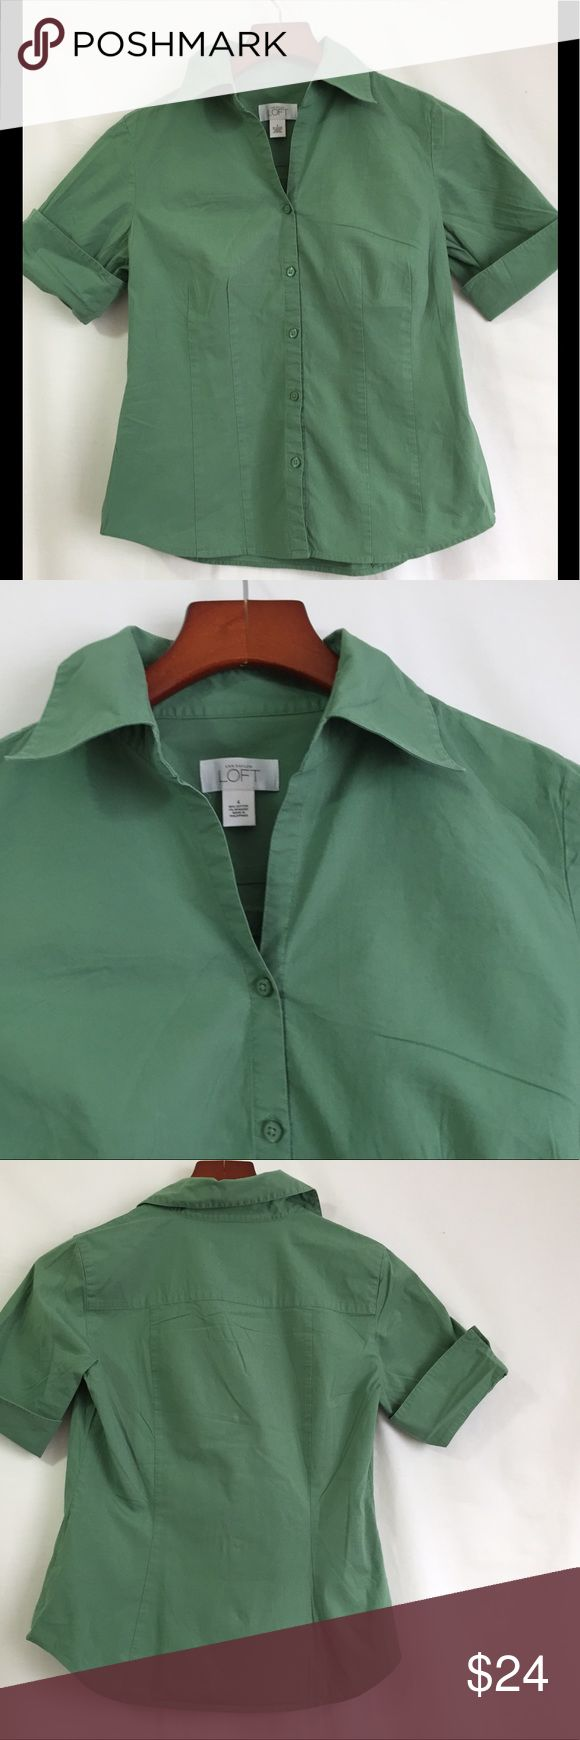 Ann Taylor LOFT Green Short Sleeve Blouse Womens 4 This is an Ann Taylor LOFT green short sleeve blouse.   Content	: 98% cotton, 4% spandex Measurements	Shoulder to shoulder  15  Sleeve length from top of shoulder 9  Chest 36  Overall Length 21 Ann Taylor Tops Button Down Shirts